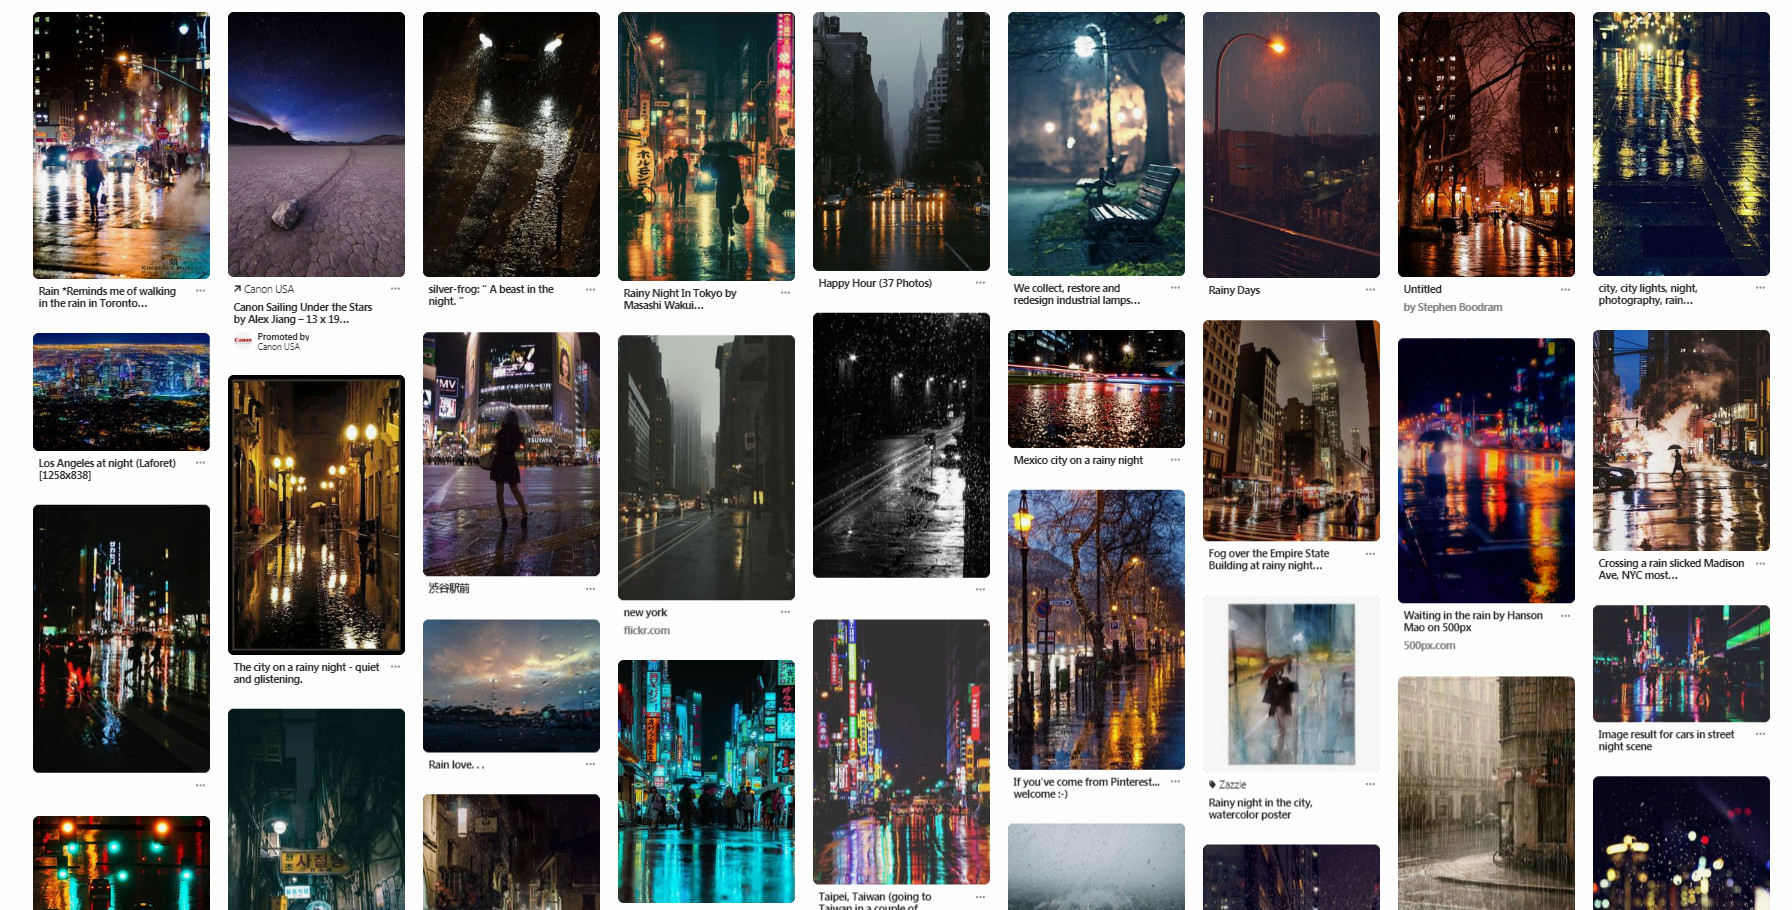 Michael baker 8 rainy city night